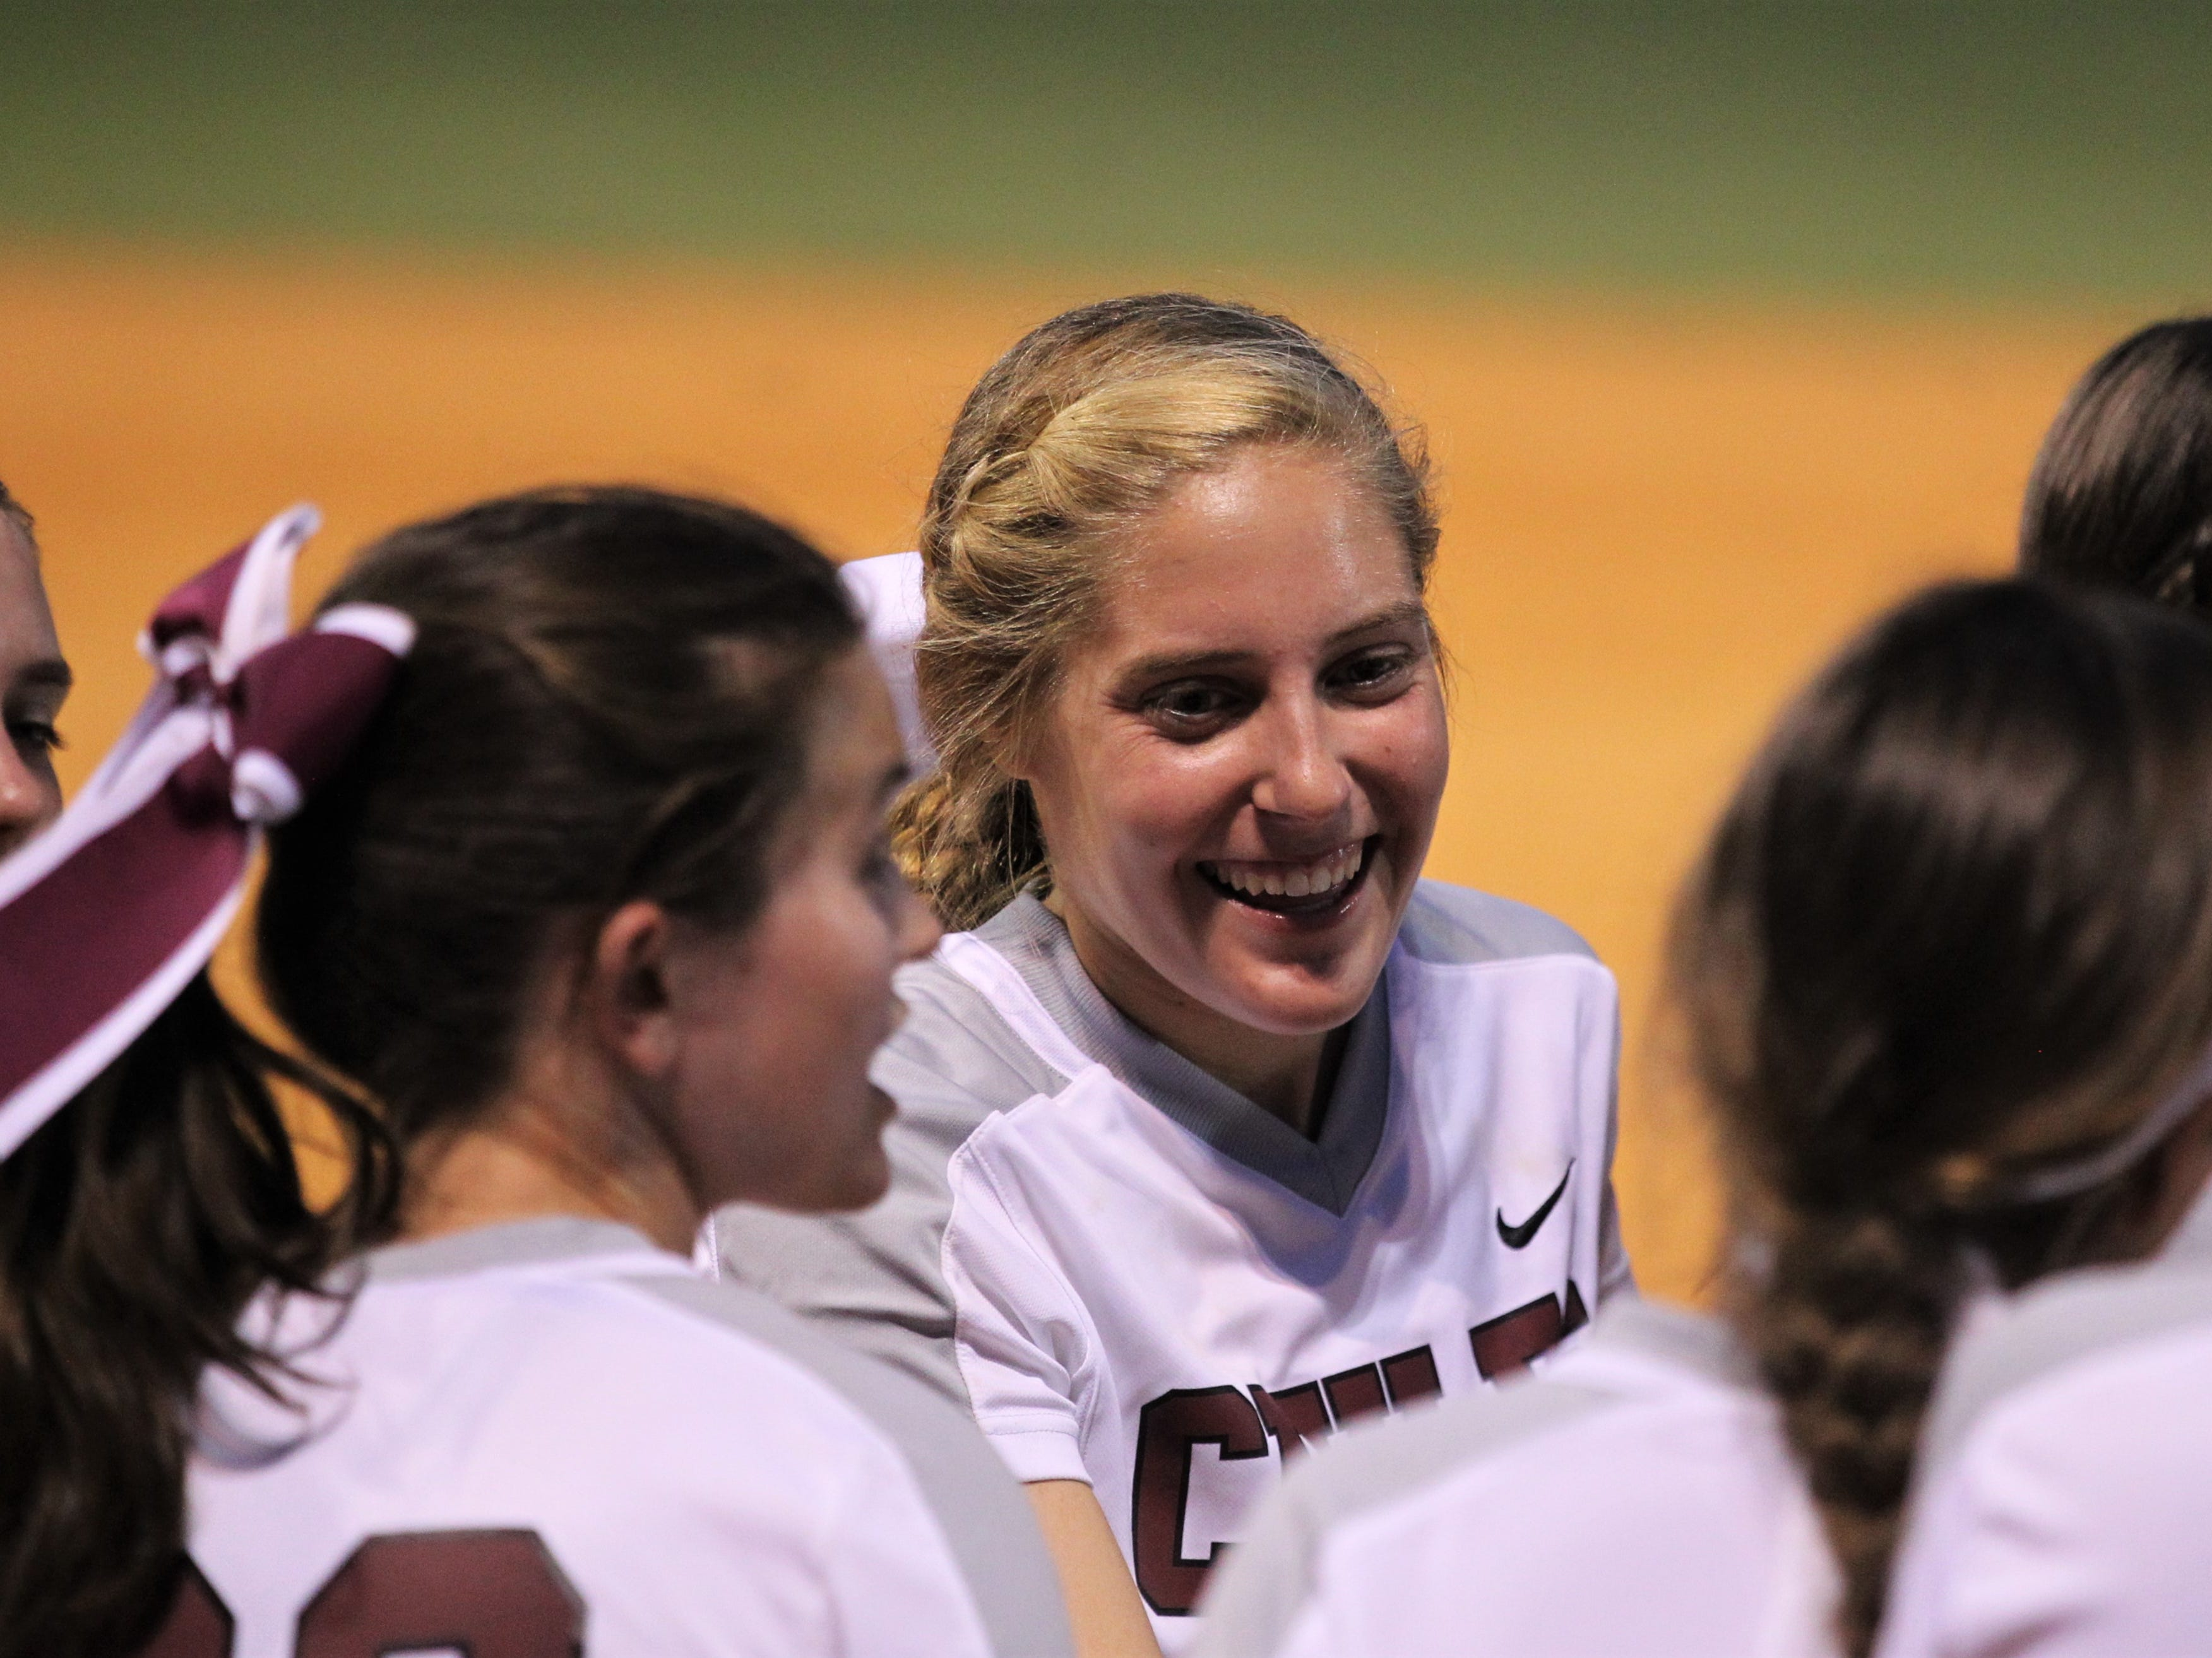 Chiles senior second baseman Kelsey Mead smiles after an inning as the Timberwolves beat Atlantic Coast 6-4 during a Region 1-8A quarterfinal softball game on Wednesday, May 8, 2019.